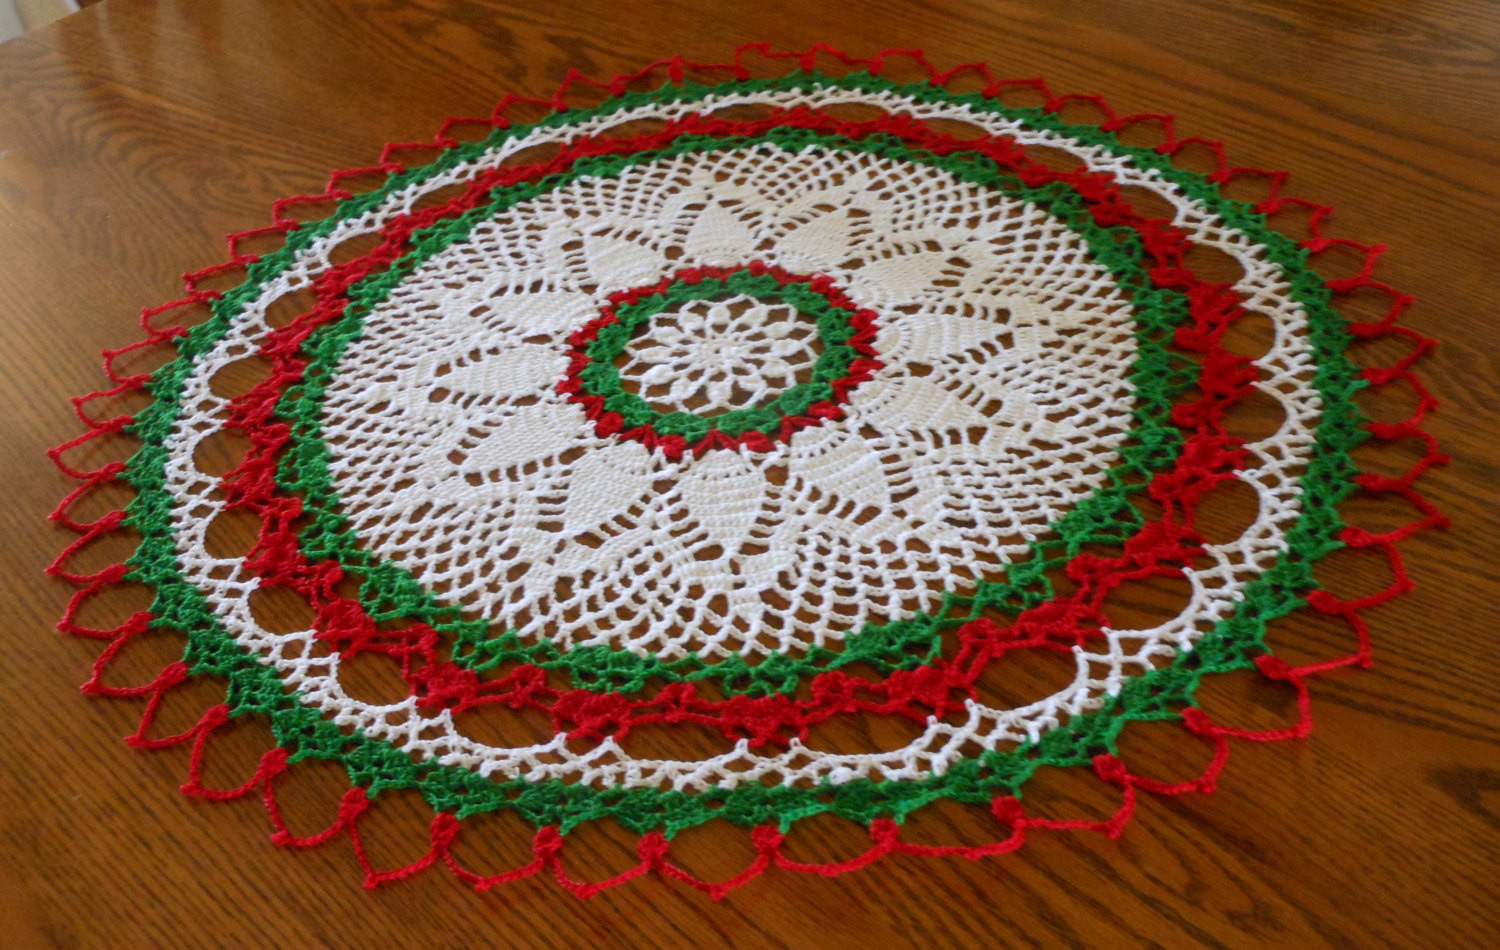 New Holiday Crochet Doily Round Doily White Red Green Doily Christmas Doilies Of Wonderful 44 Photos Christmas Doilies